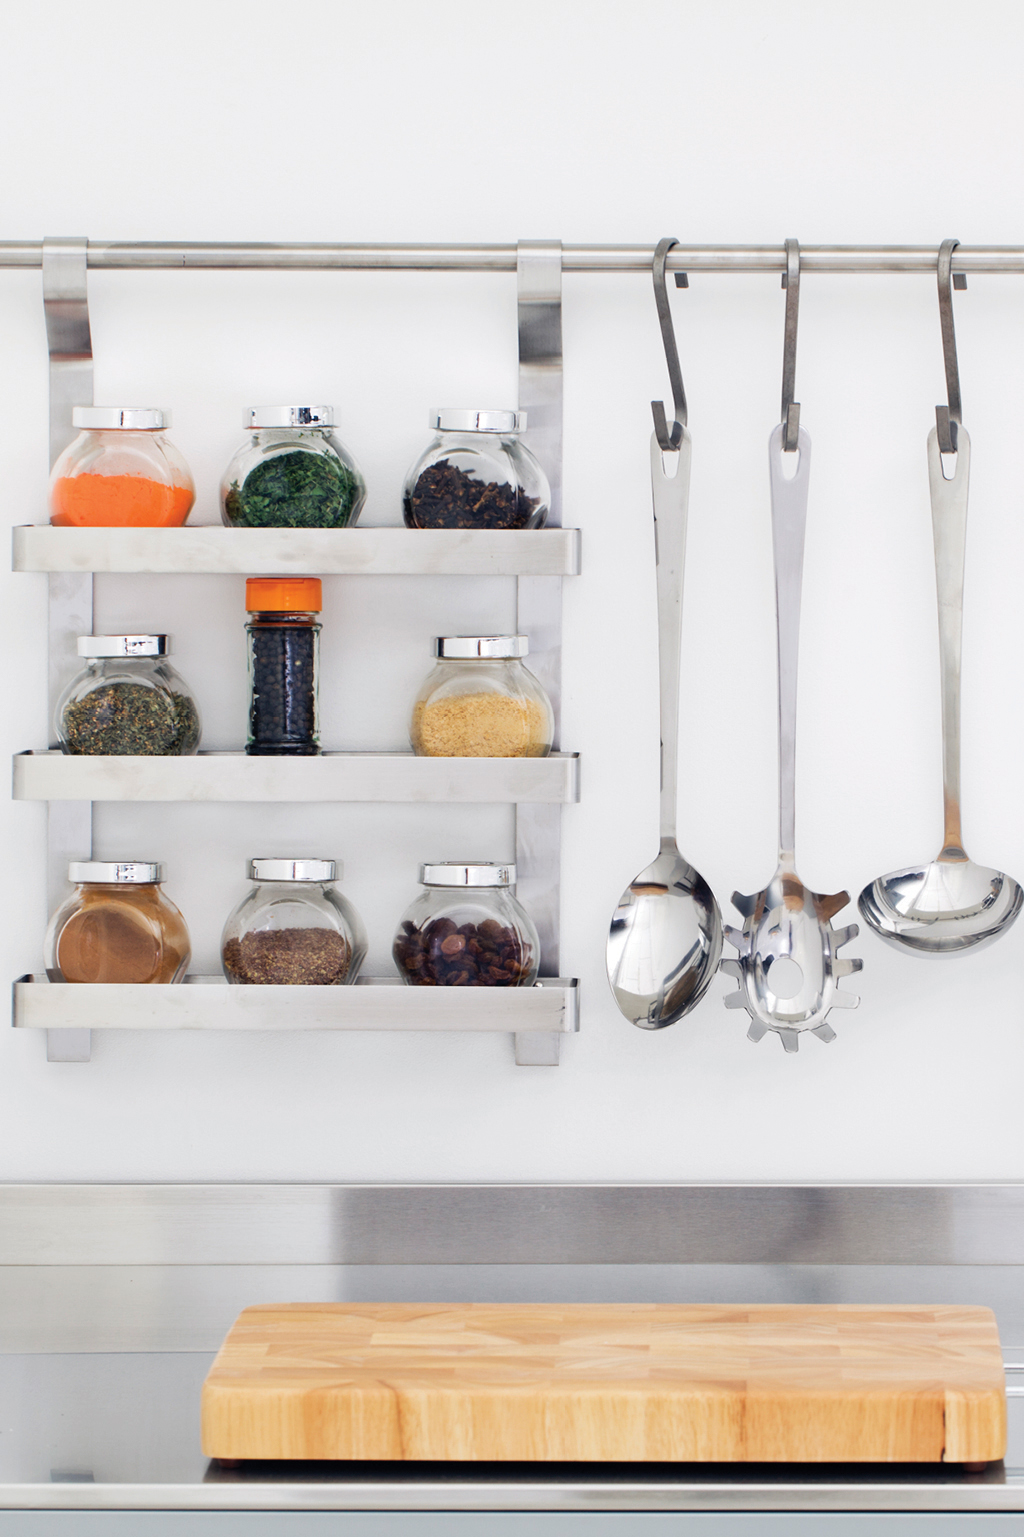 Kitchen utensils and spice rack hanging above sink